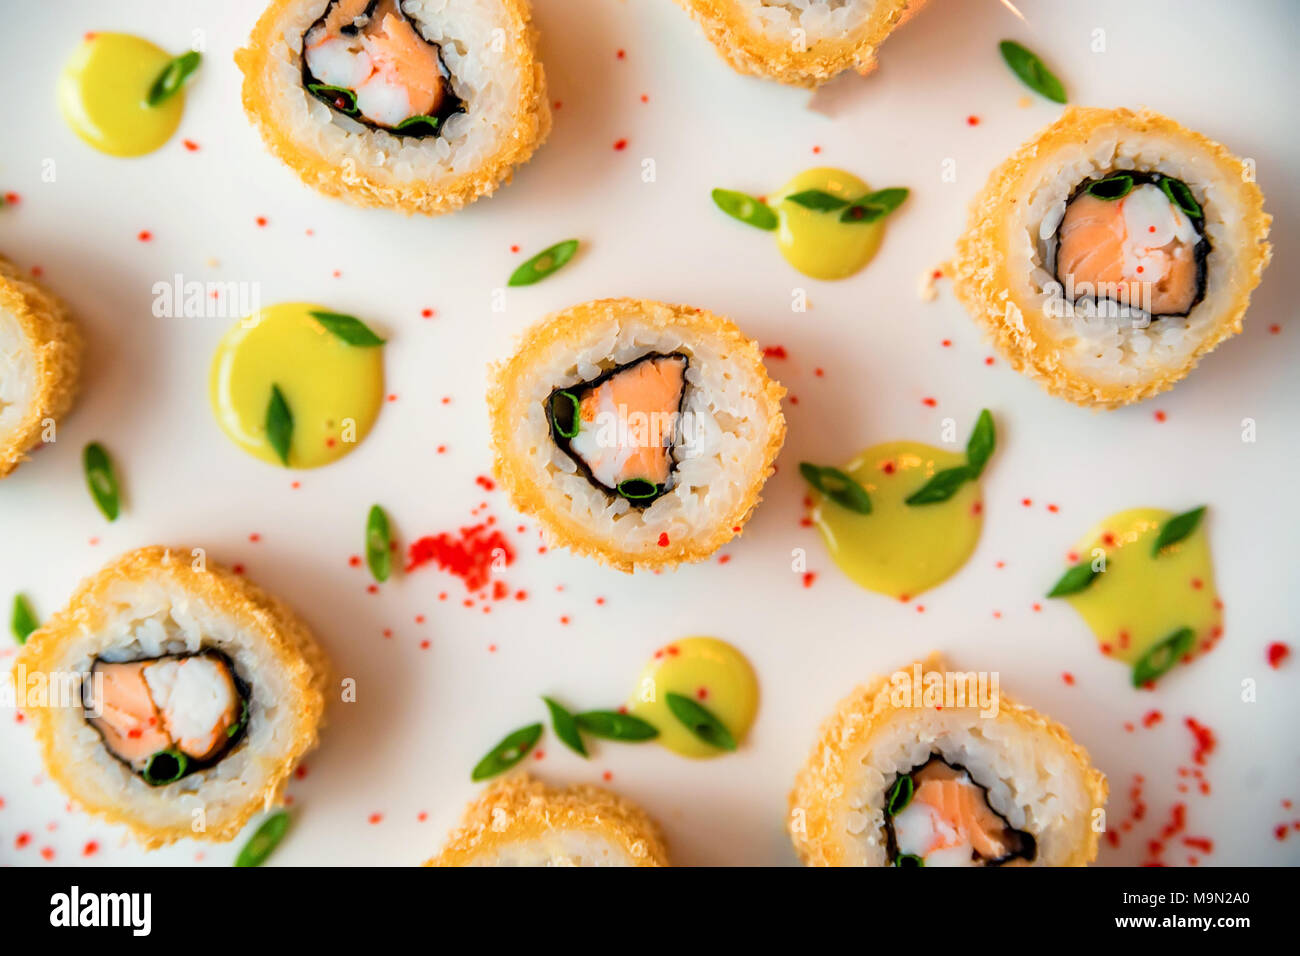 Sushi rolls scattered on white background - Stock Image